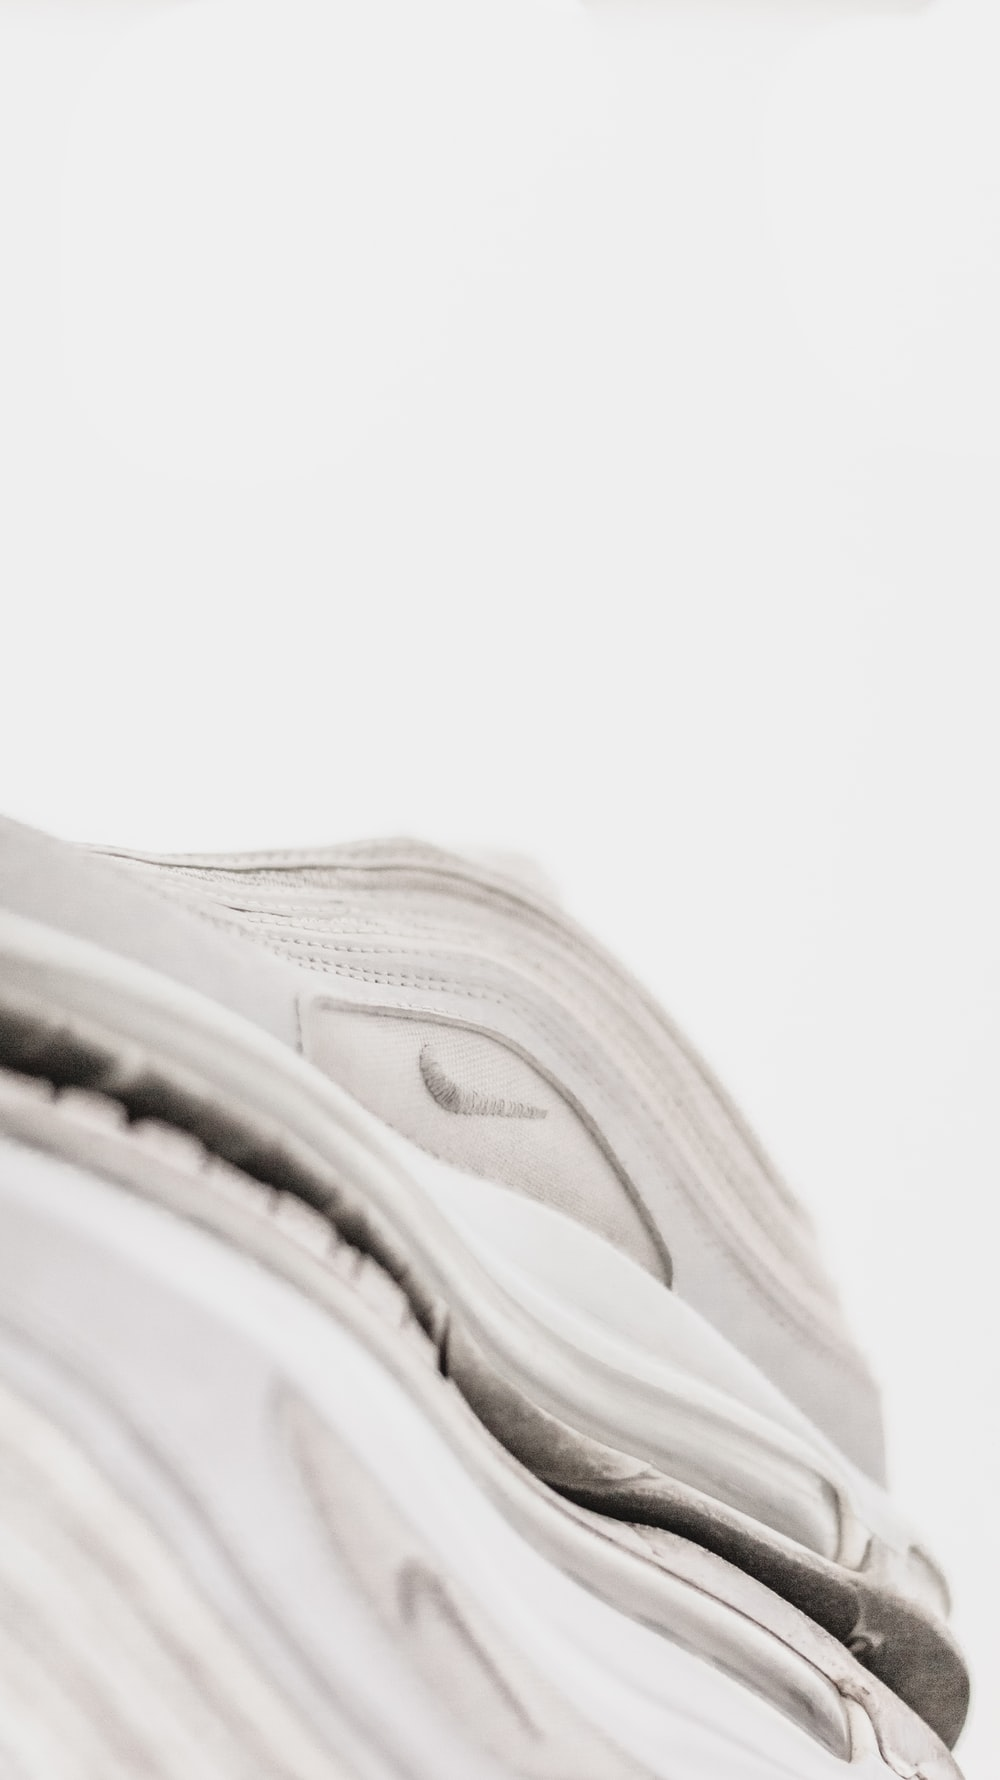 white and gray nike athletic shoes